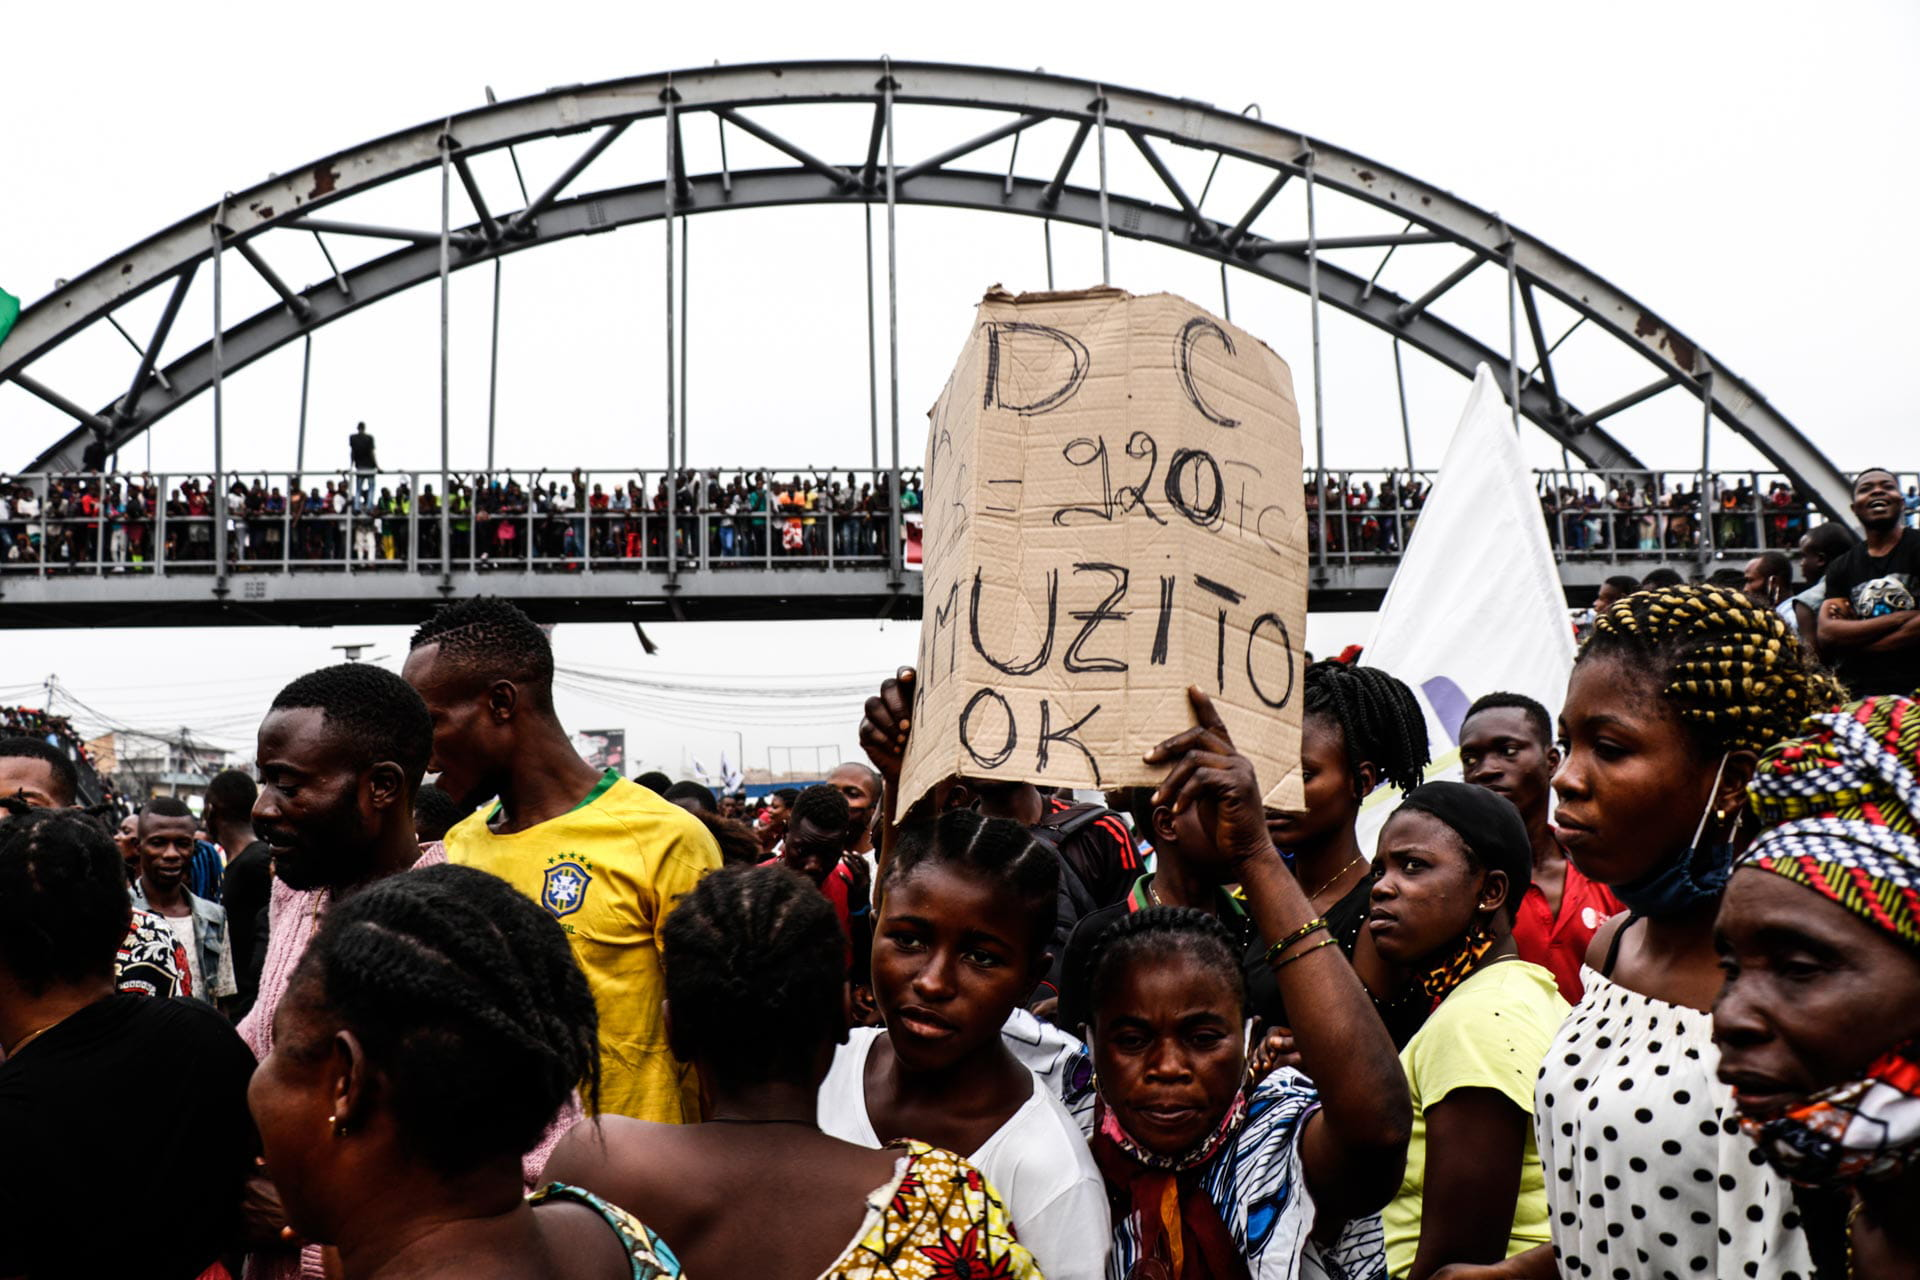 Kinshasa, DRC, August 23th 2020. Supporters line the streets waiting to catch a glimpse of Lamuka opposition party leader Martin Fayulu as he returned to Kinshasa this week after being stuck in the United States for five months due to coronavirus travel restrictions. © Justin Makangara for Fondation Carmignac